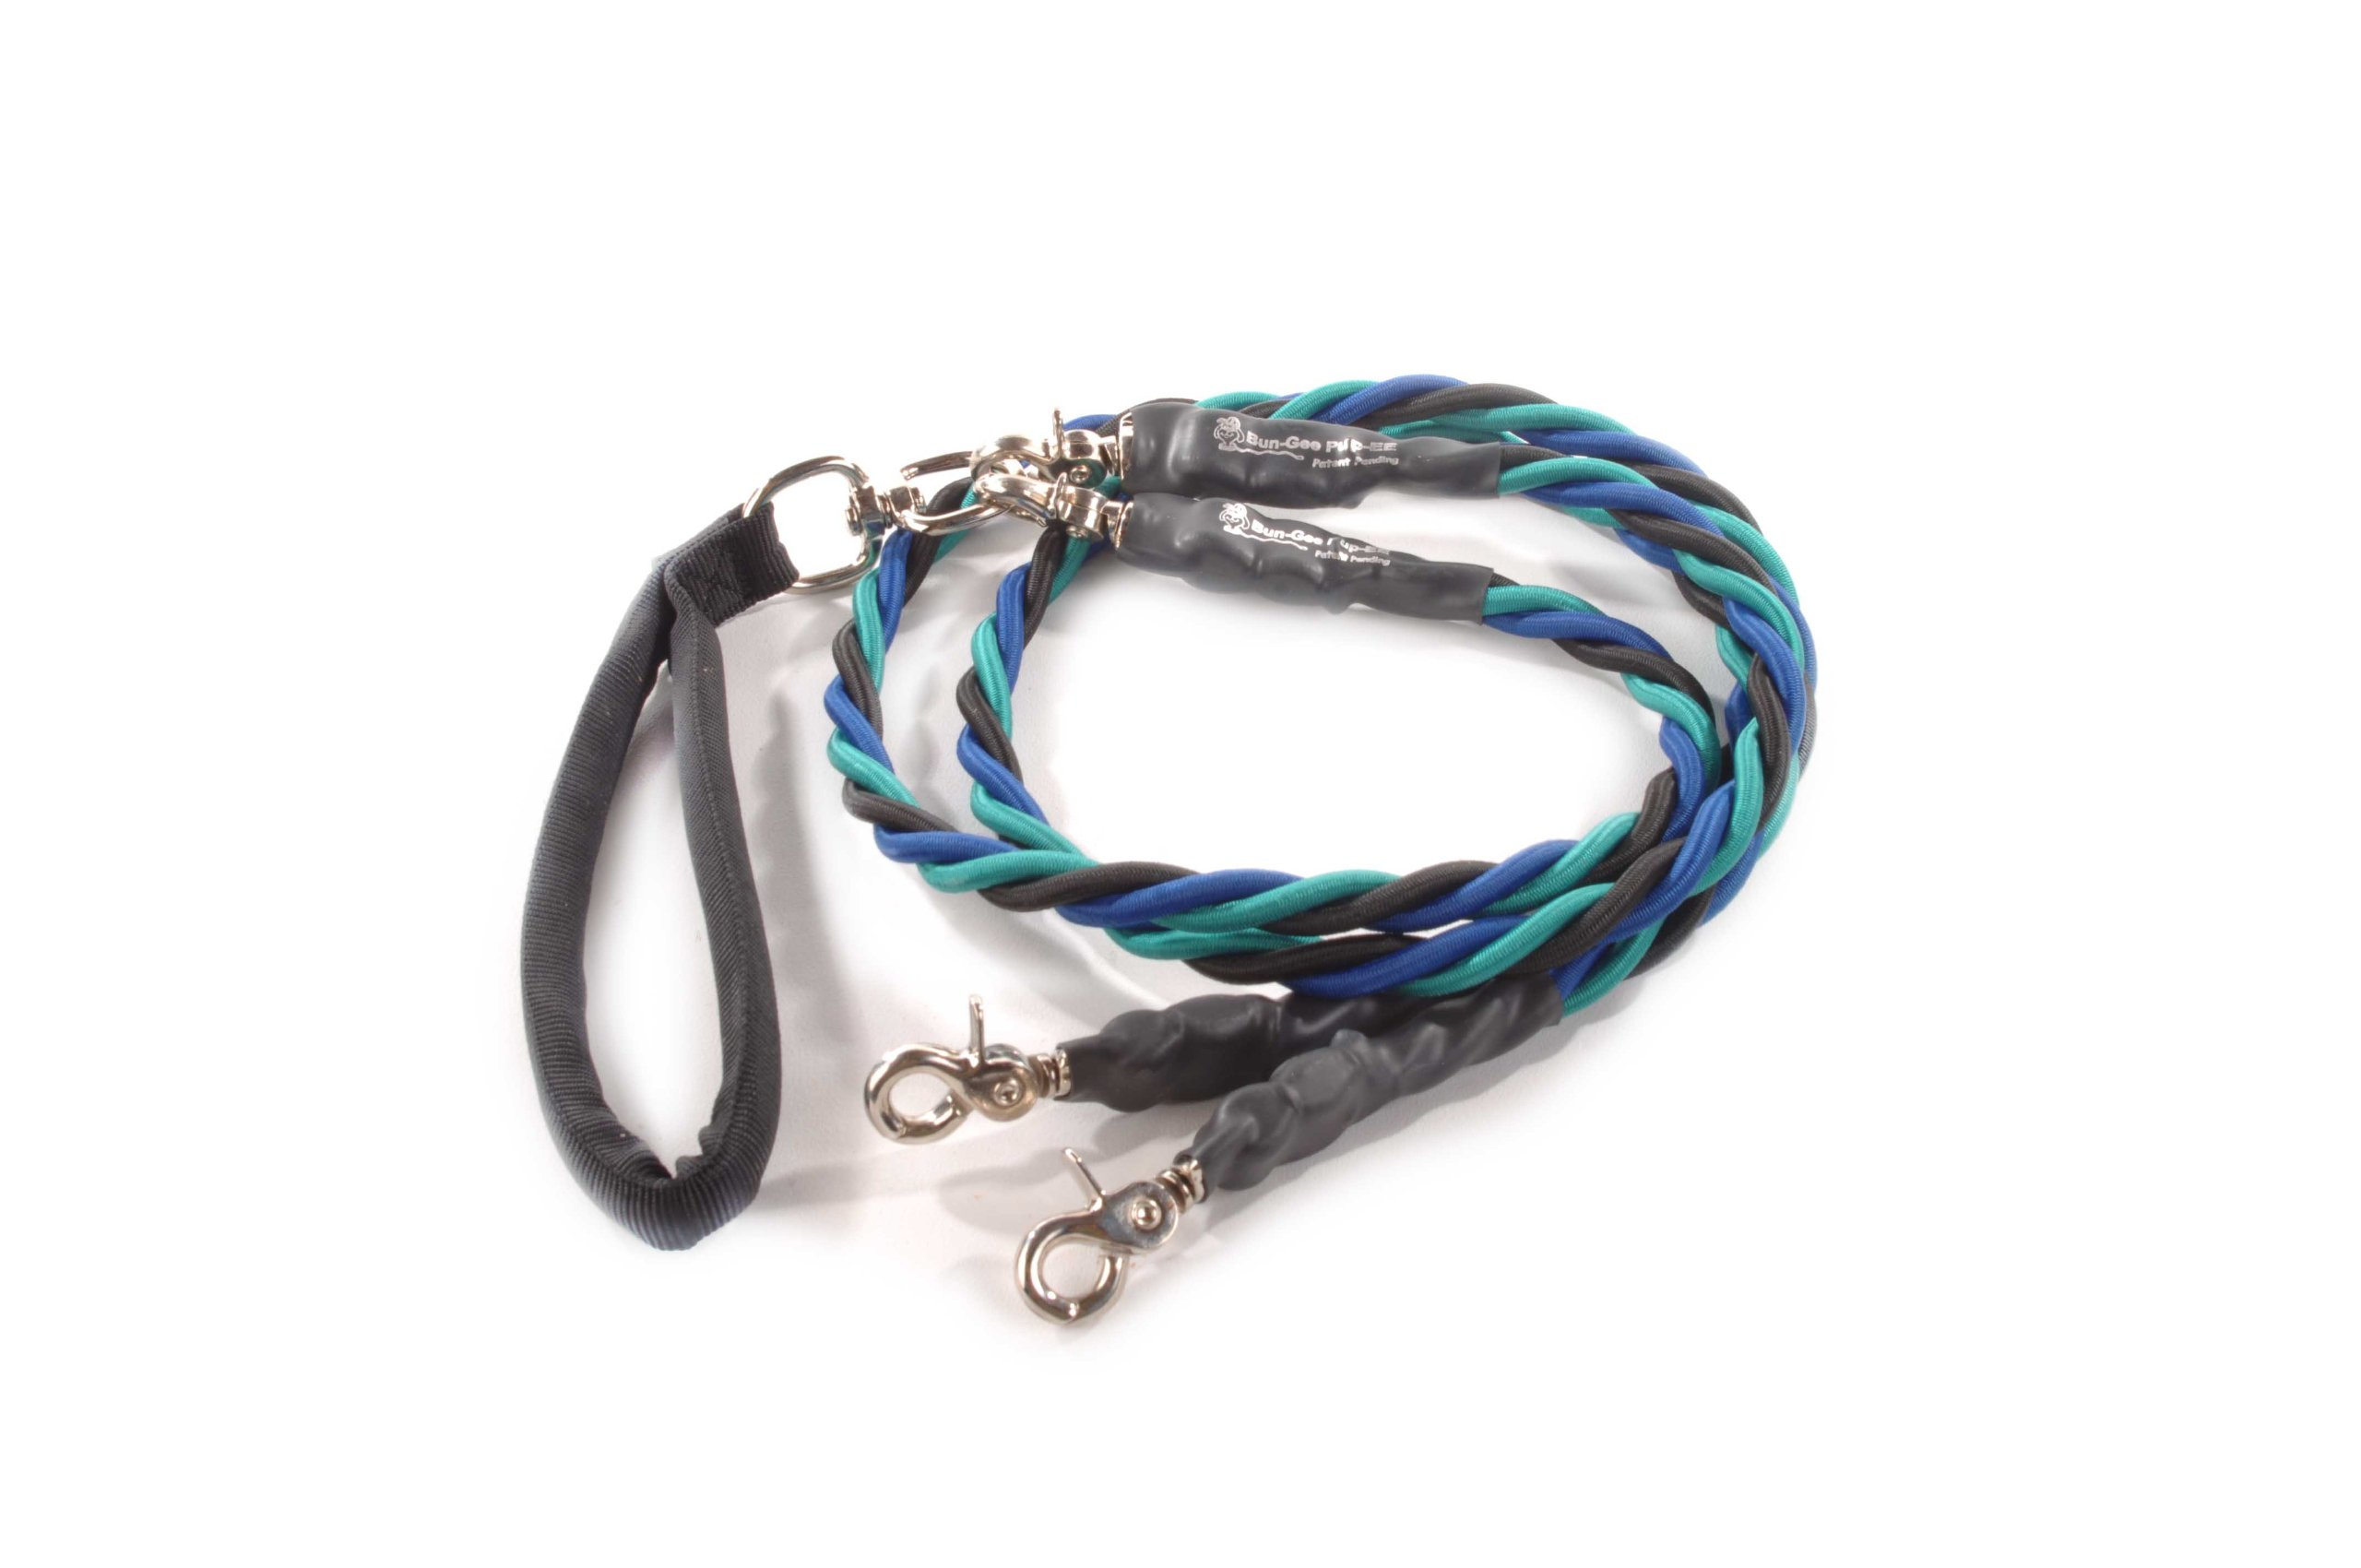 Bungee Pupee 4-Feet Double Large Leash, Teal/Blue/Black by Bungee Pupee (Image #1)